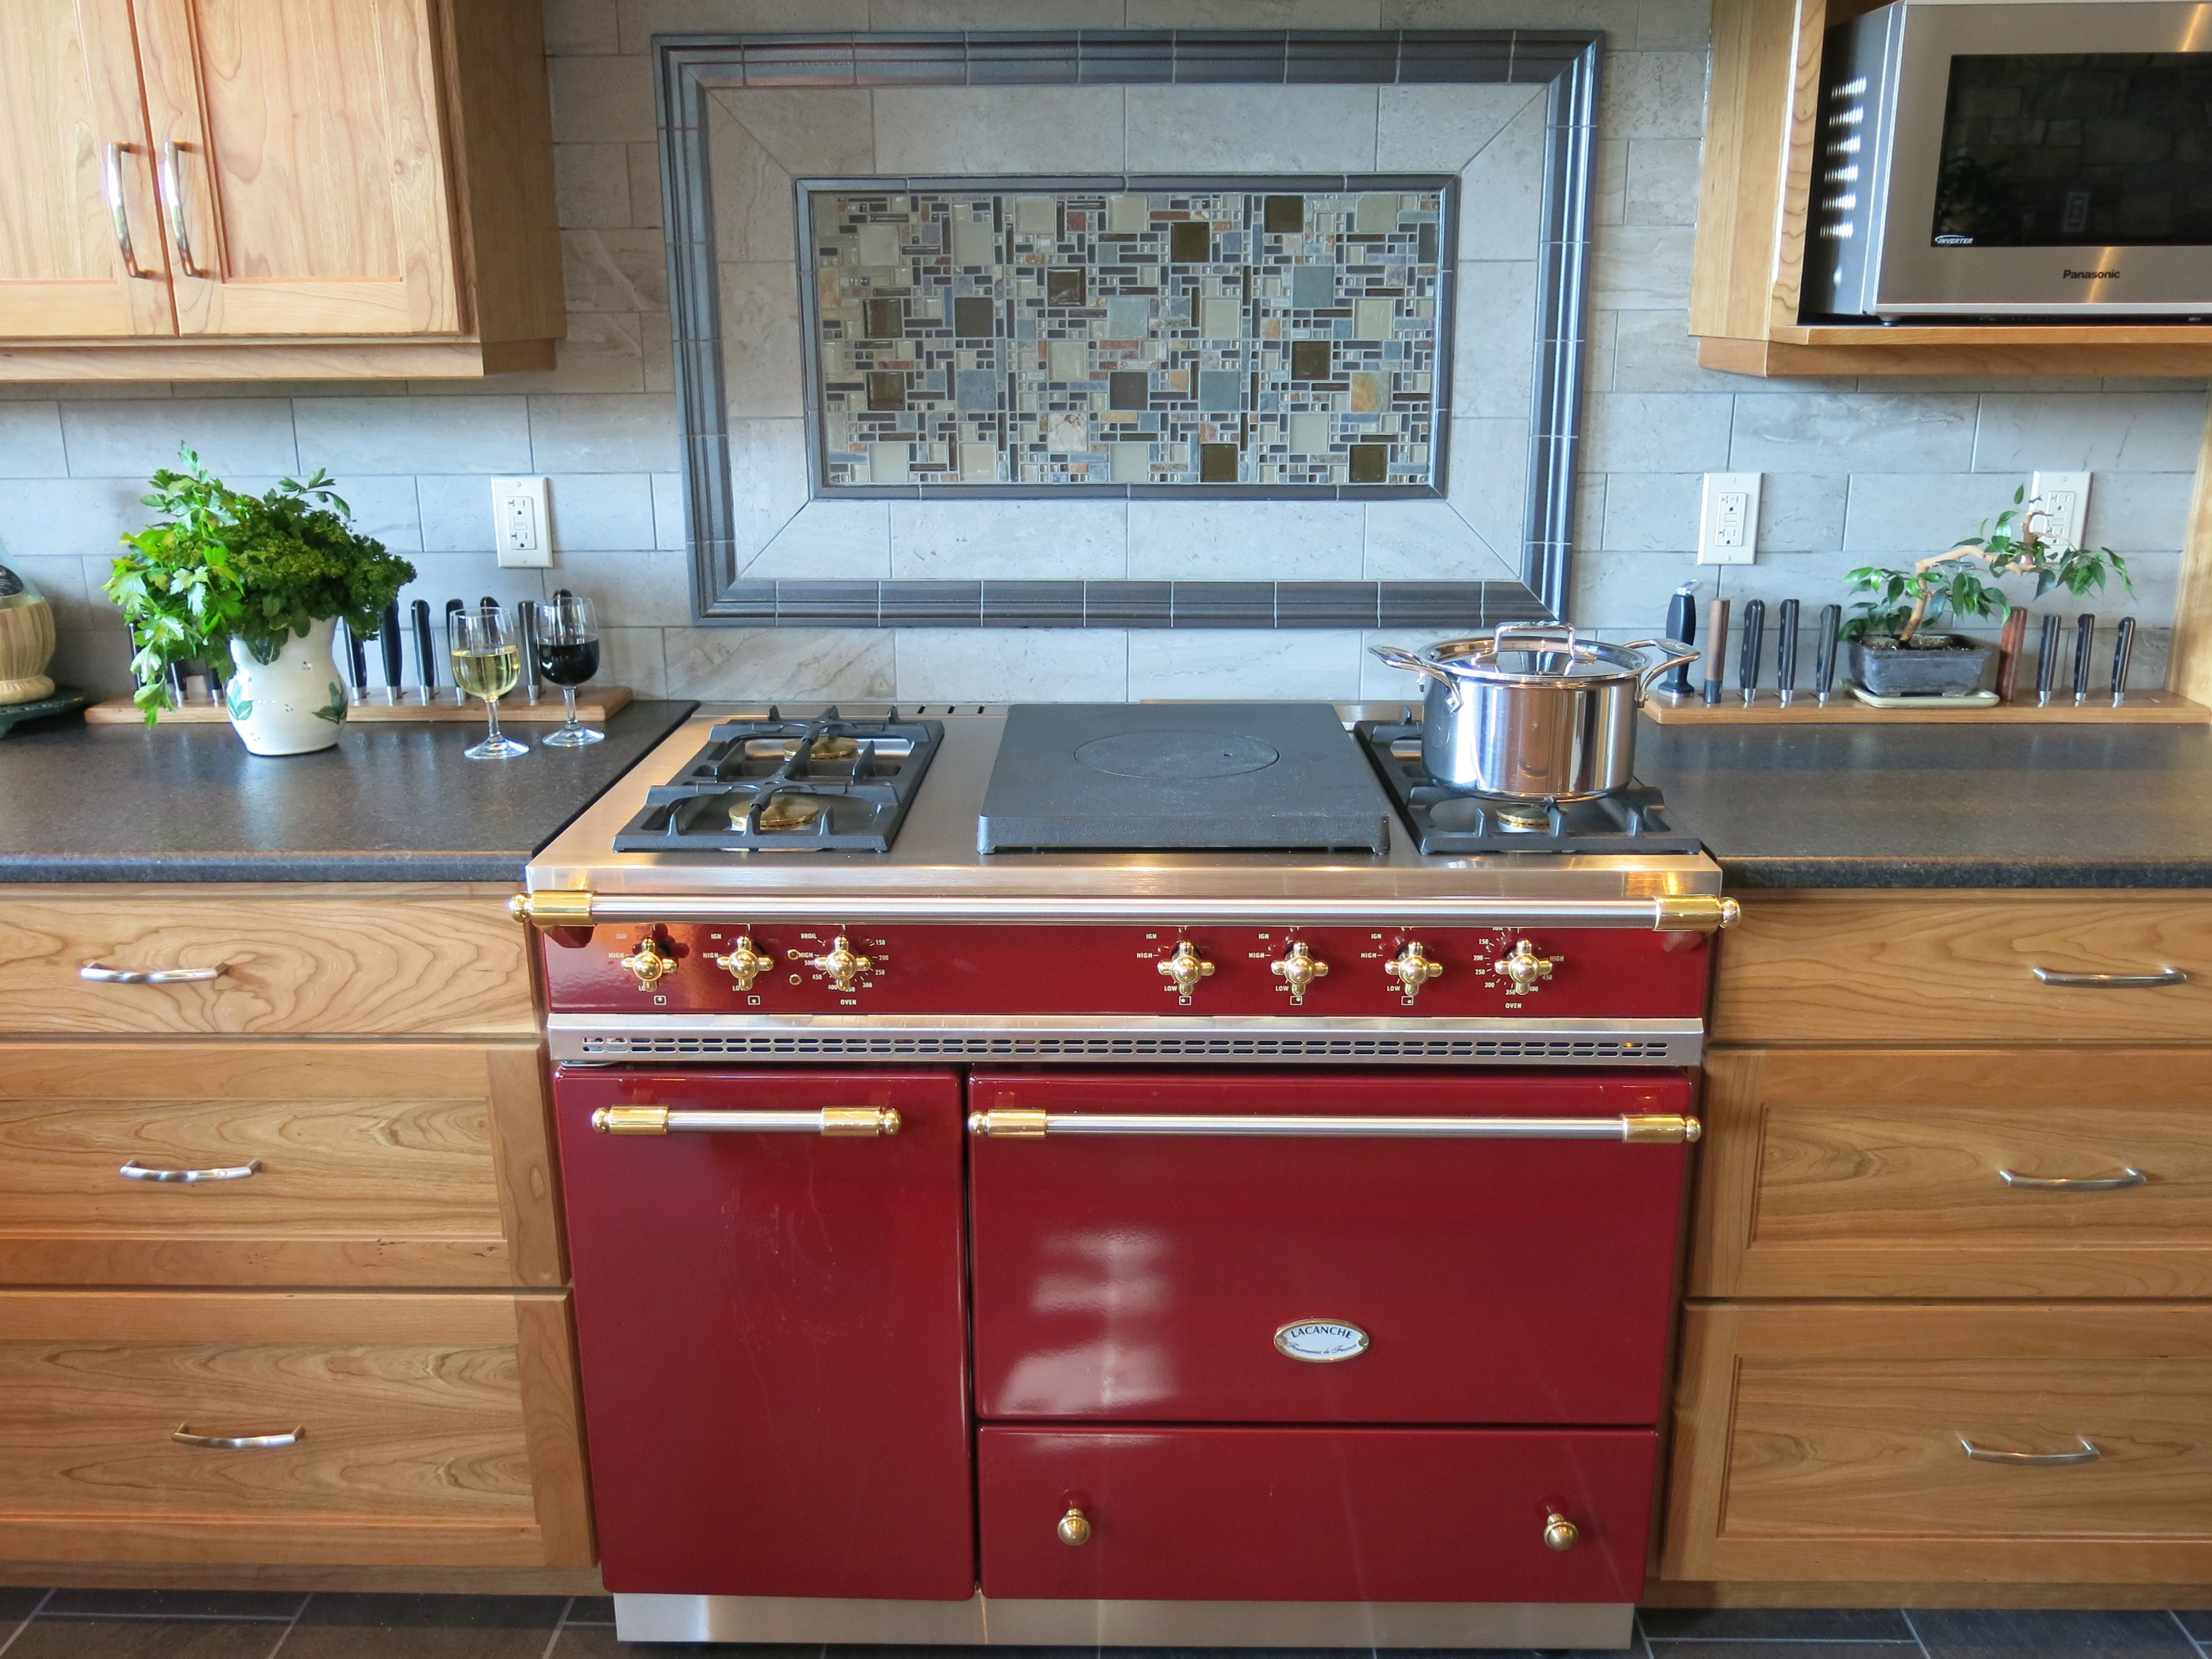 A Glass Of Wine A Stunning Backsplash And A Burgundy Red Lacanche Range In The Heart Of The Rocky Mountains What Else Can You Cooking Range Kitchen Burgundy